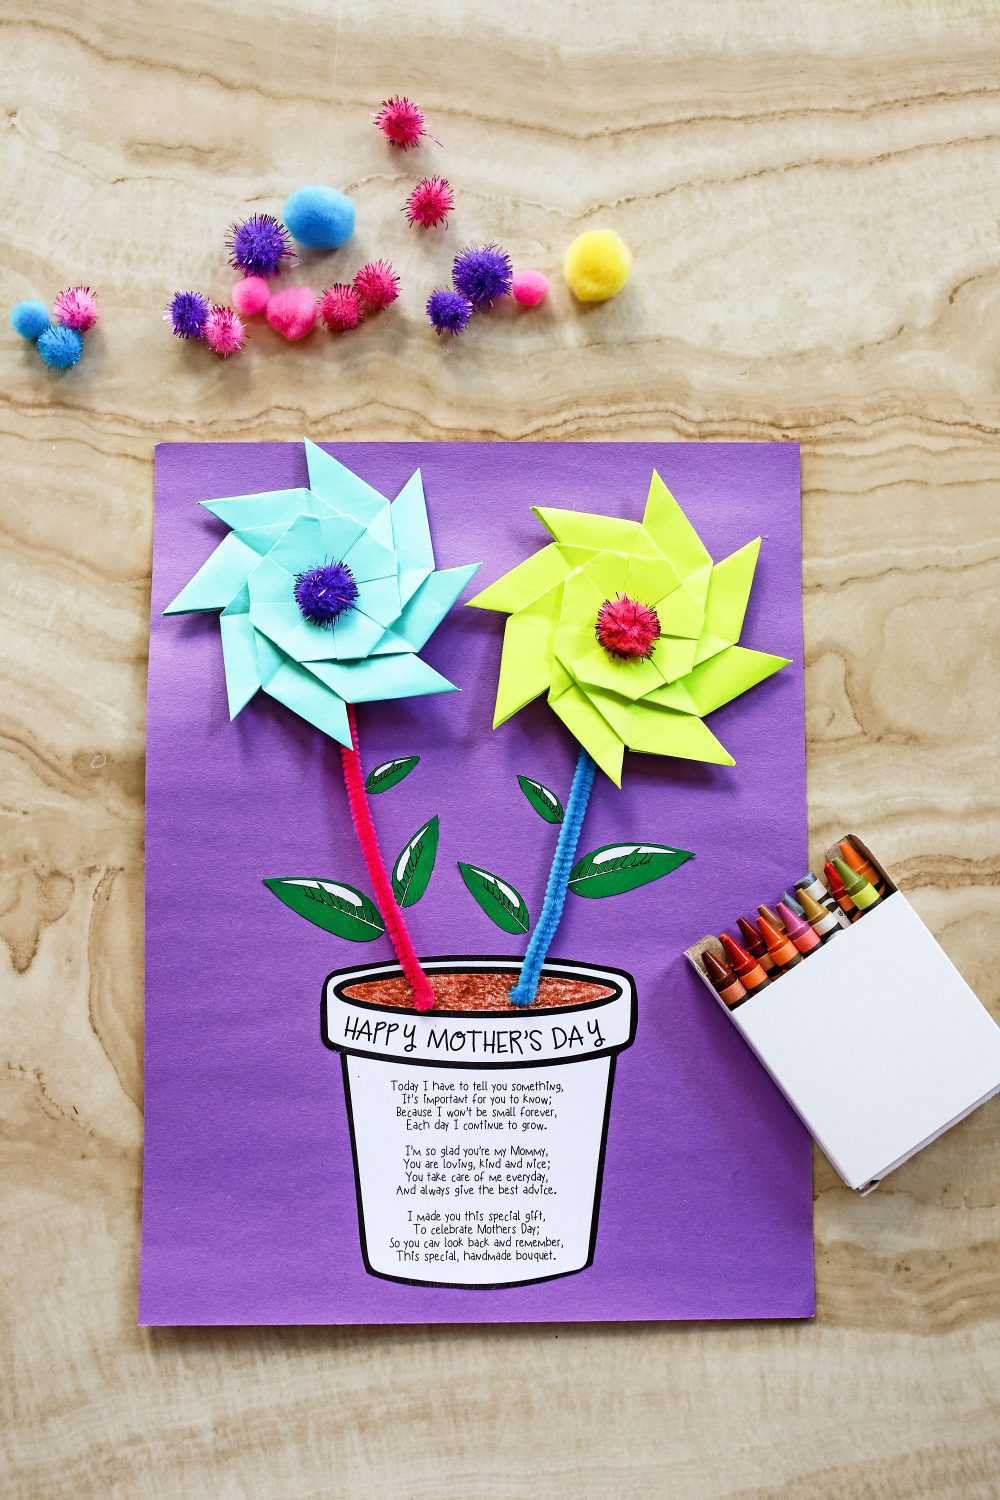 Happy Mother's Day printable flower pot craft on a table